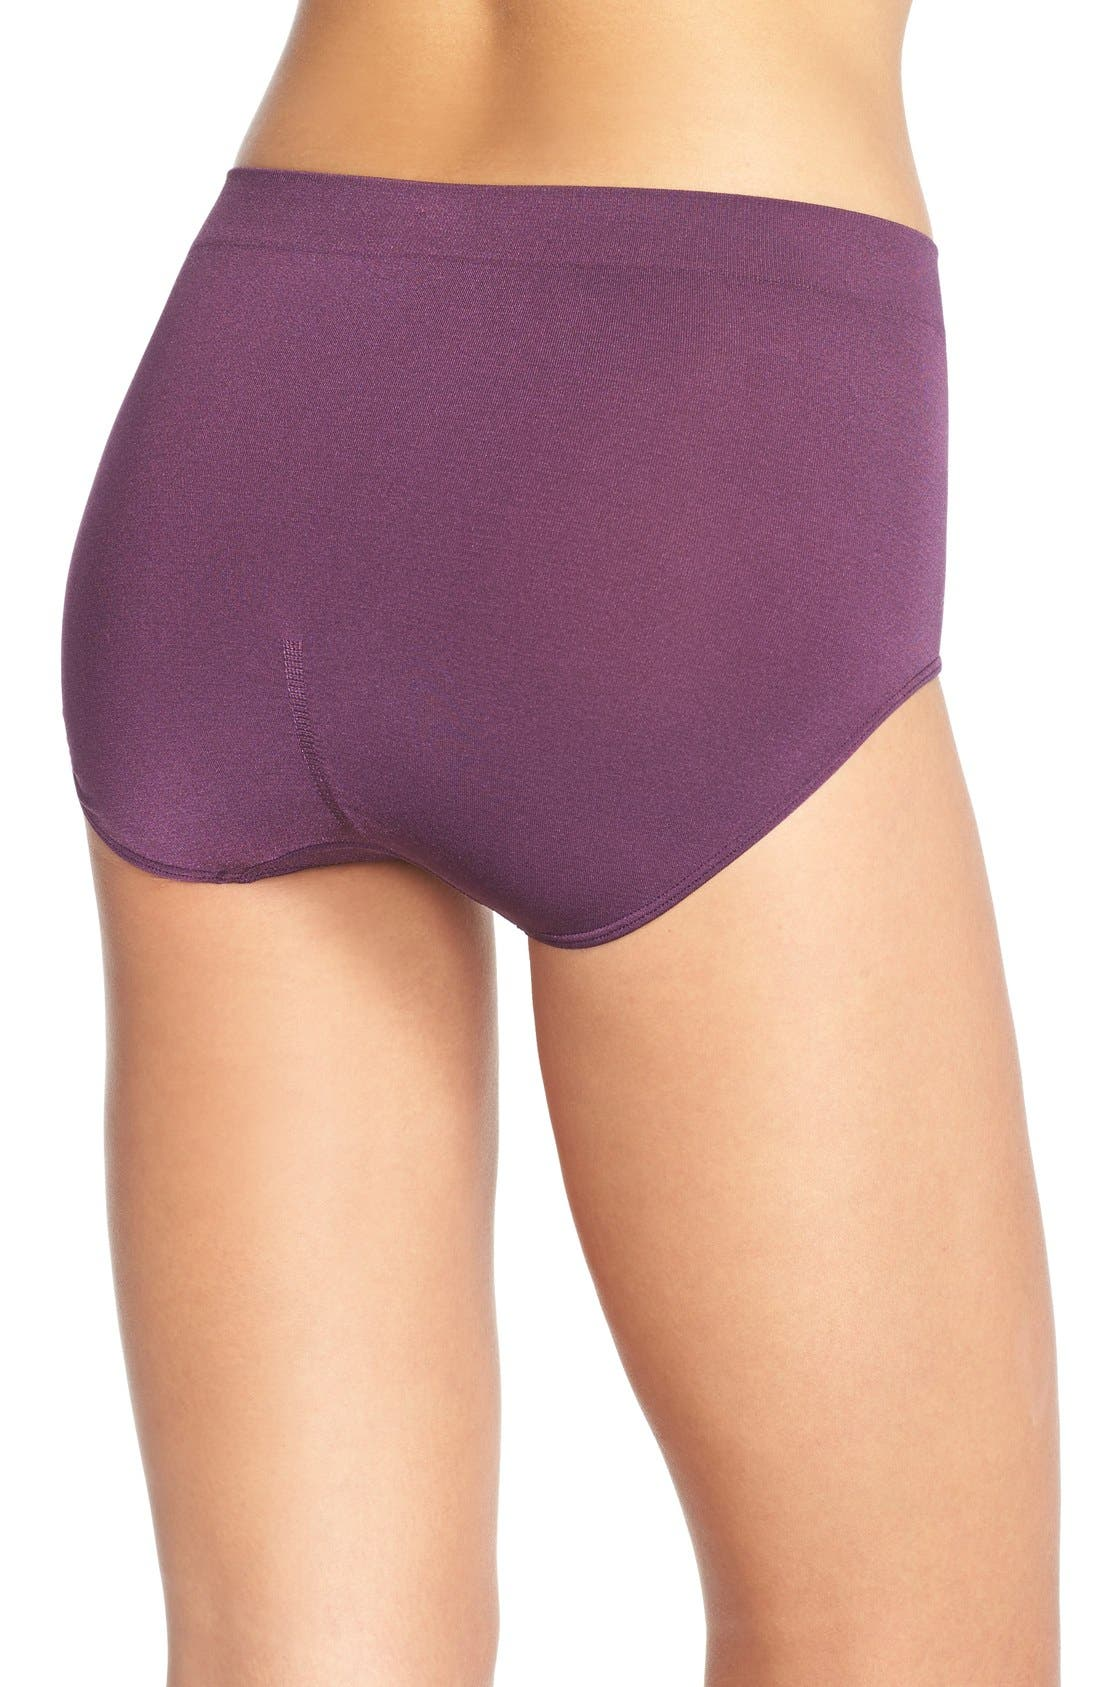 B Smooth Briefs,                             Alternate thumbnail 219, color,